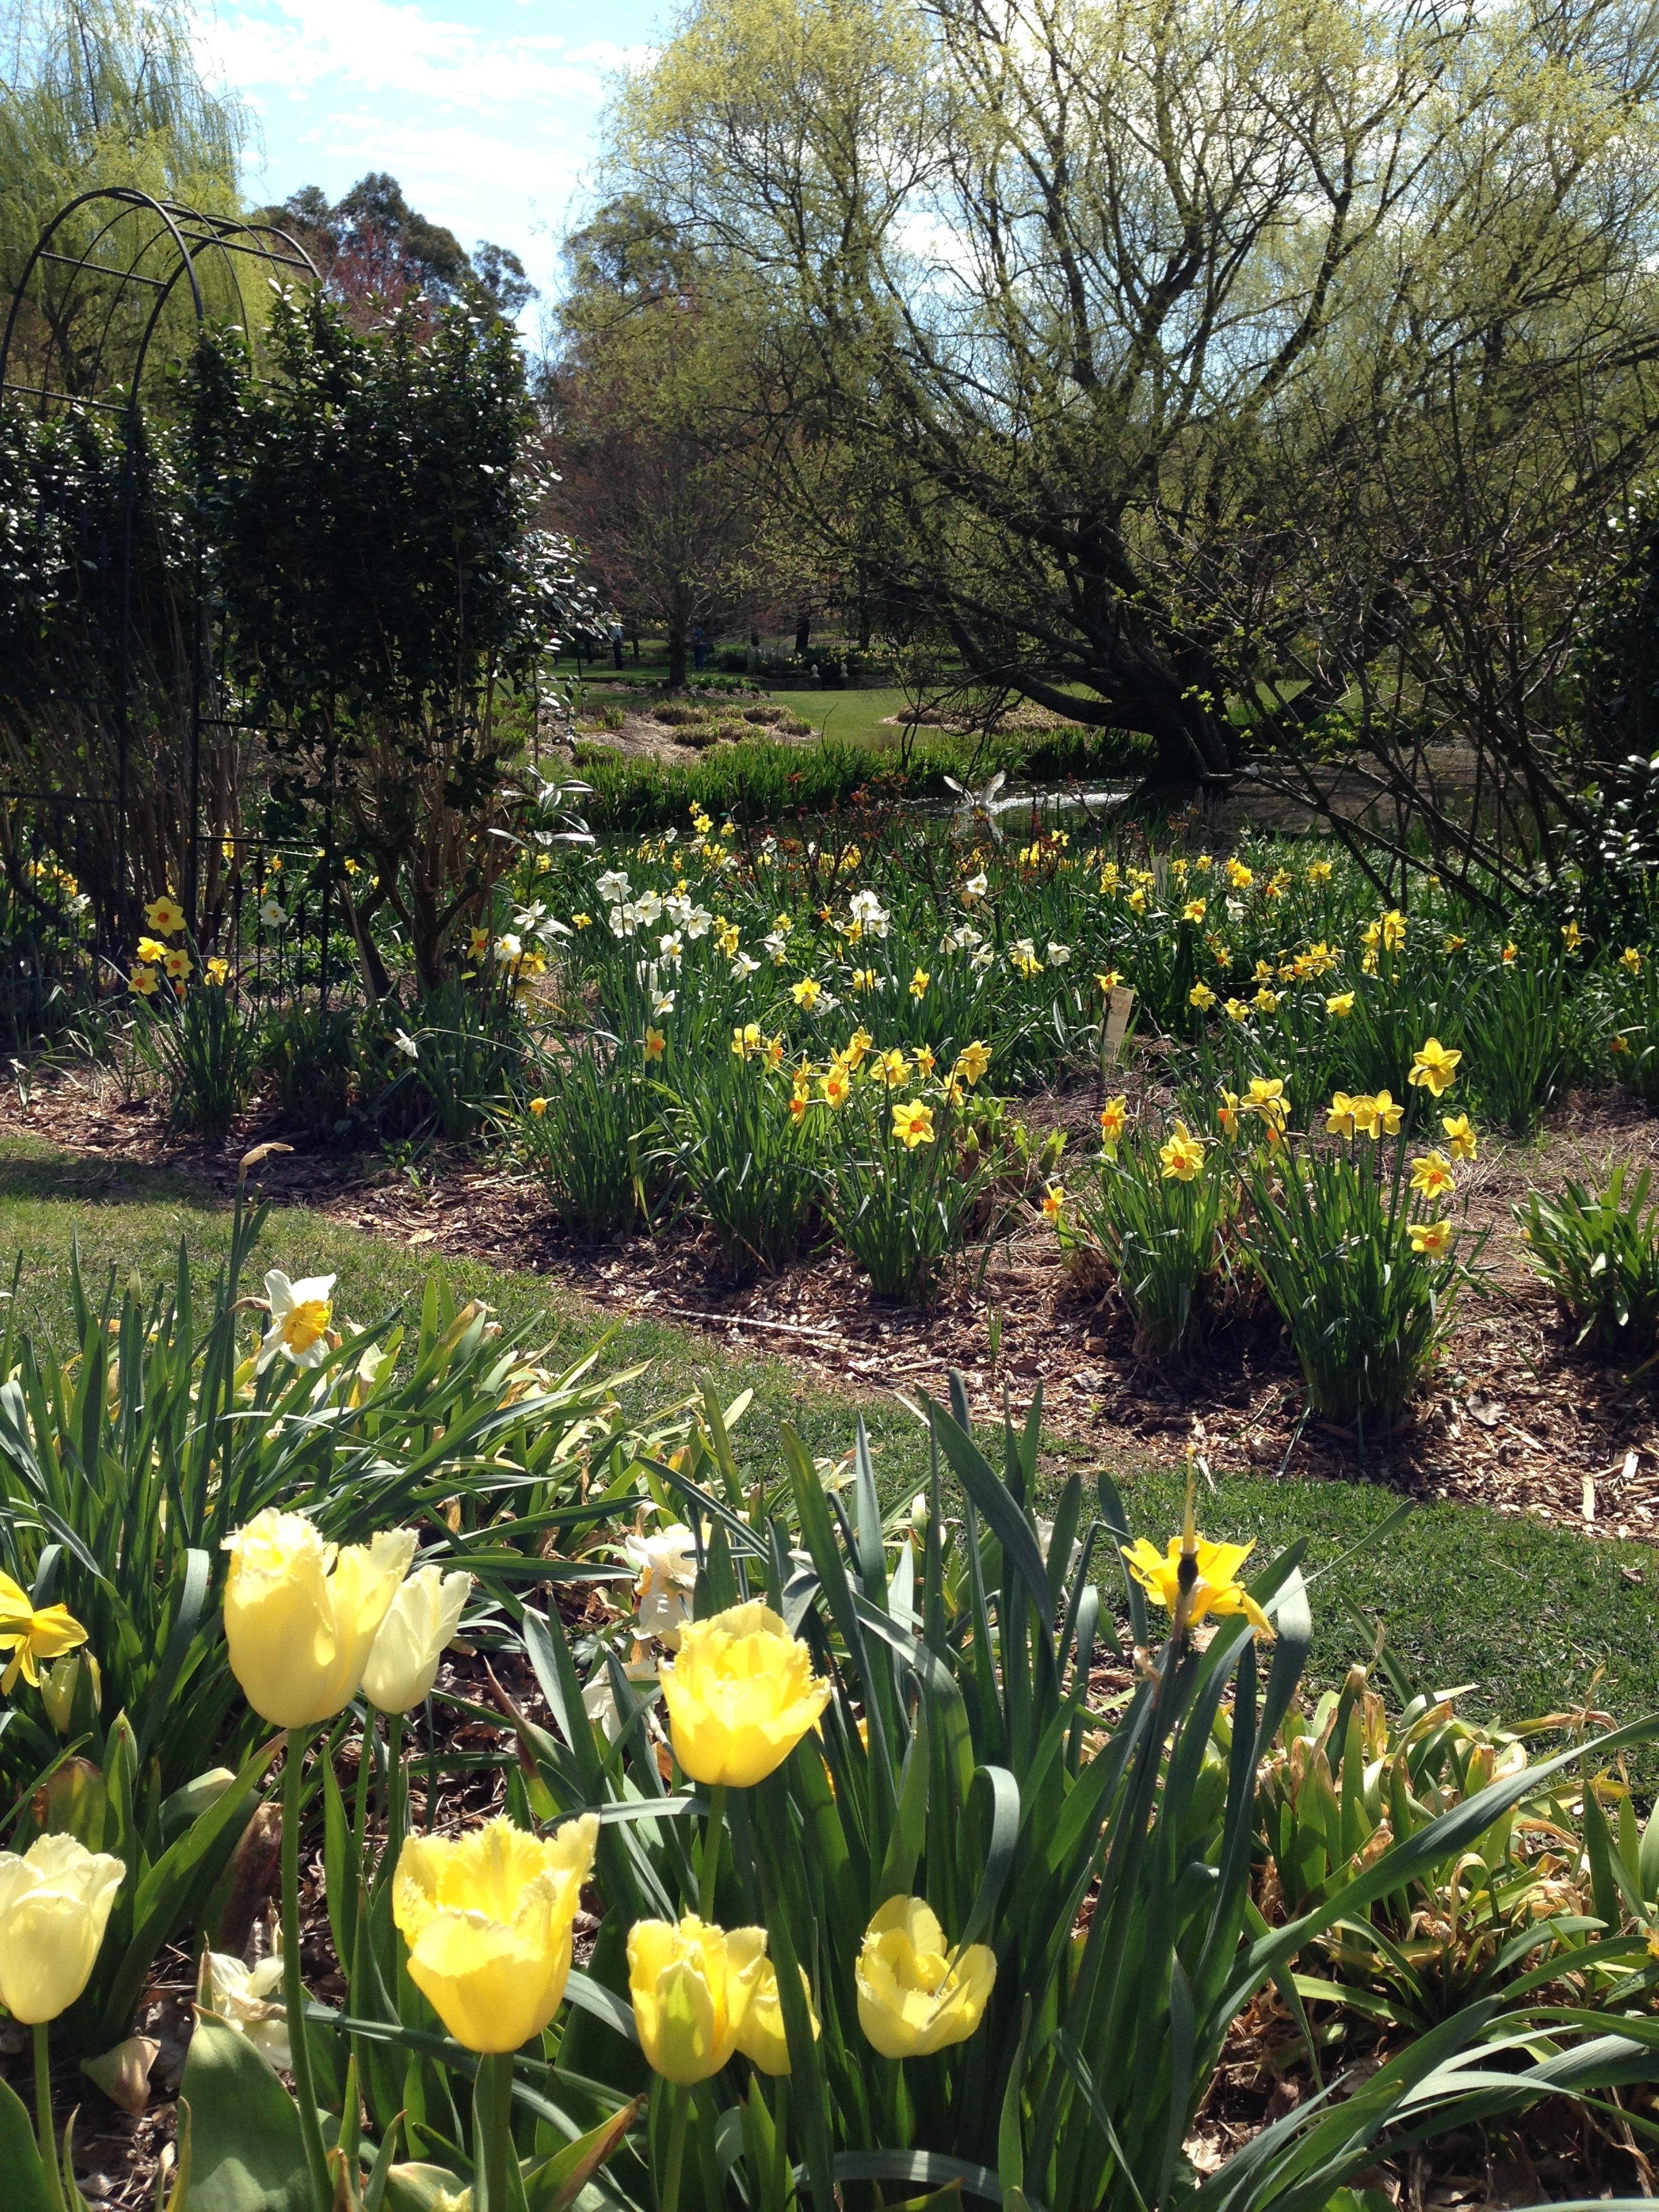 Daffodils At Rydal: Opening My Mind